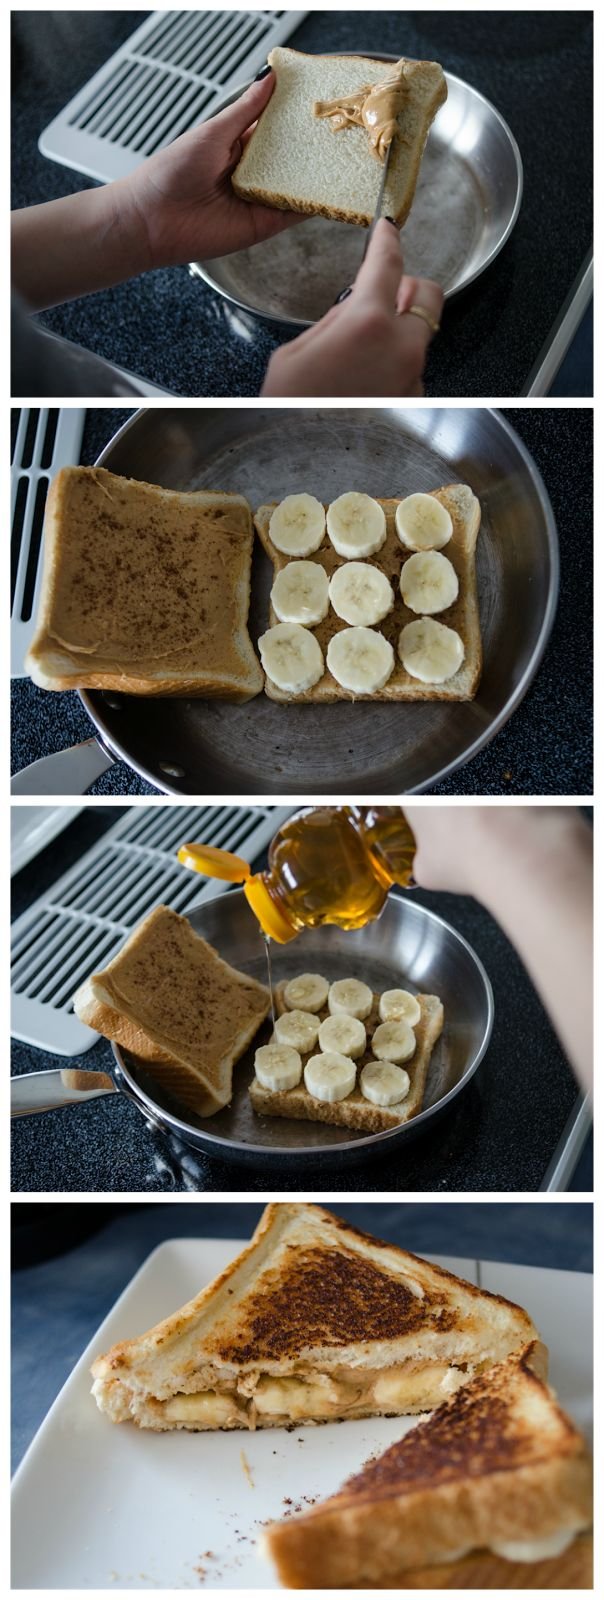 Omg yes!!! One of my fave snacks!!! PB, Banana, Cinnamon & Honey Grilled Sammy